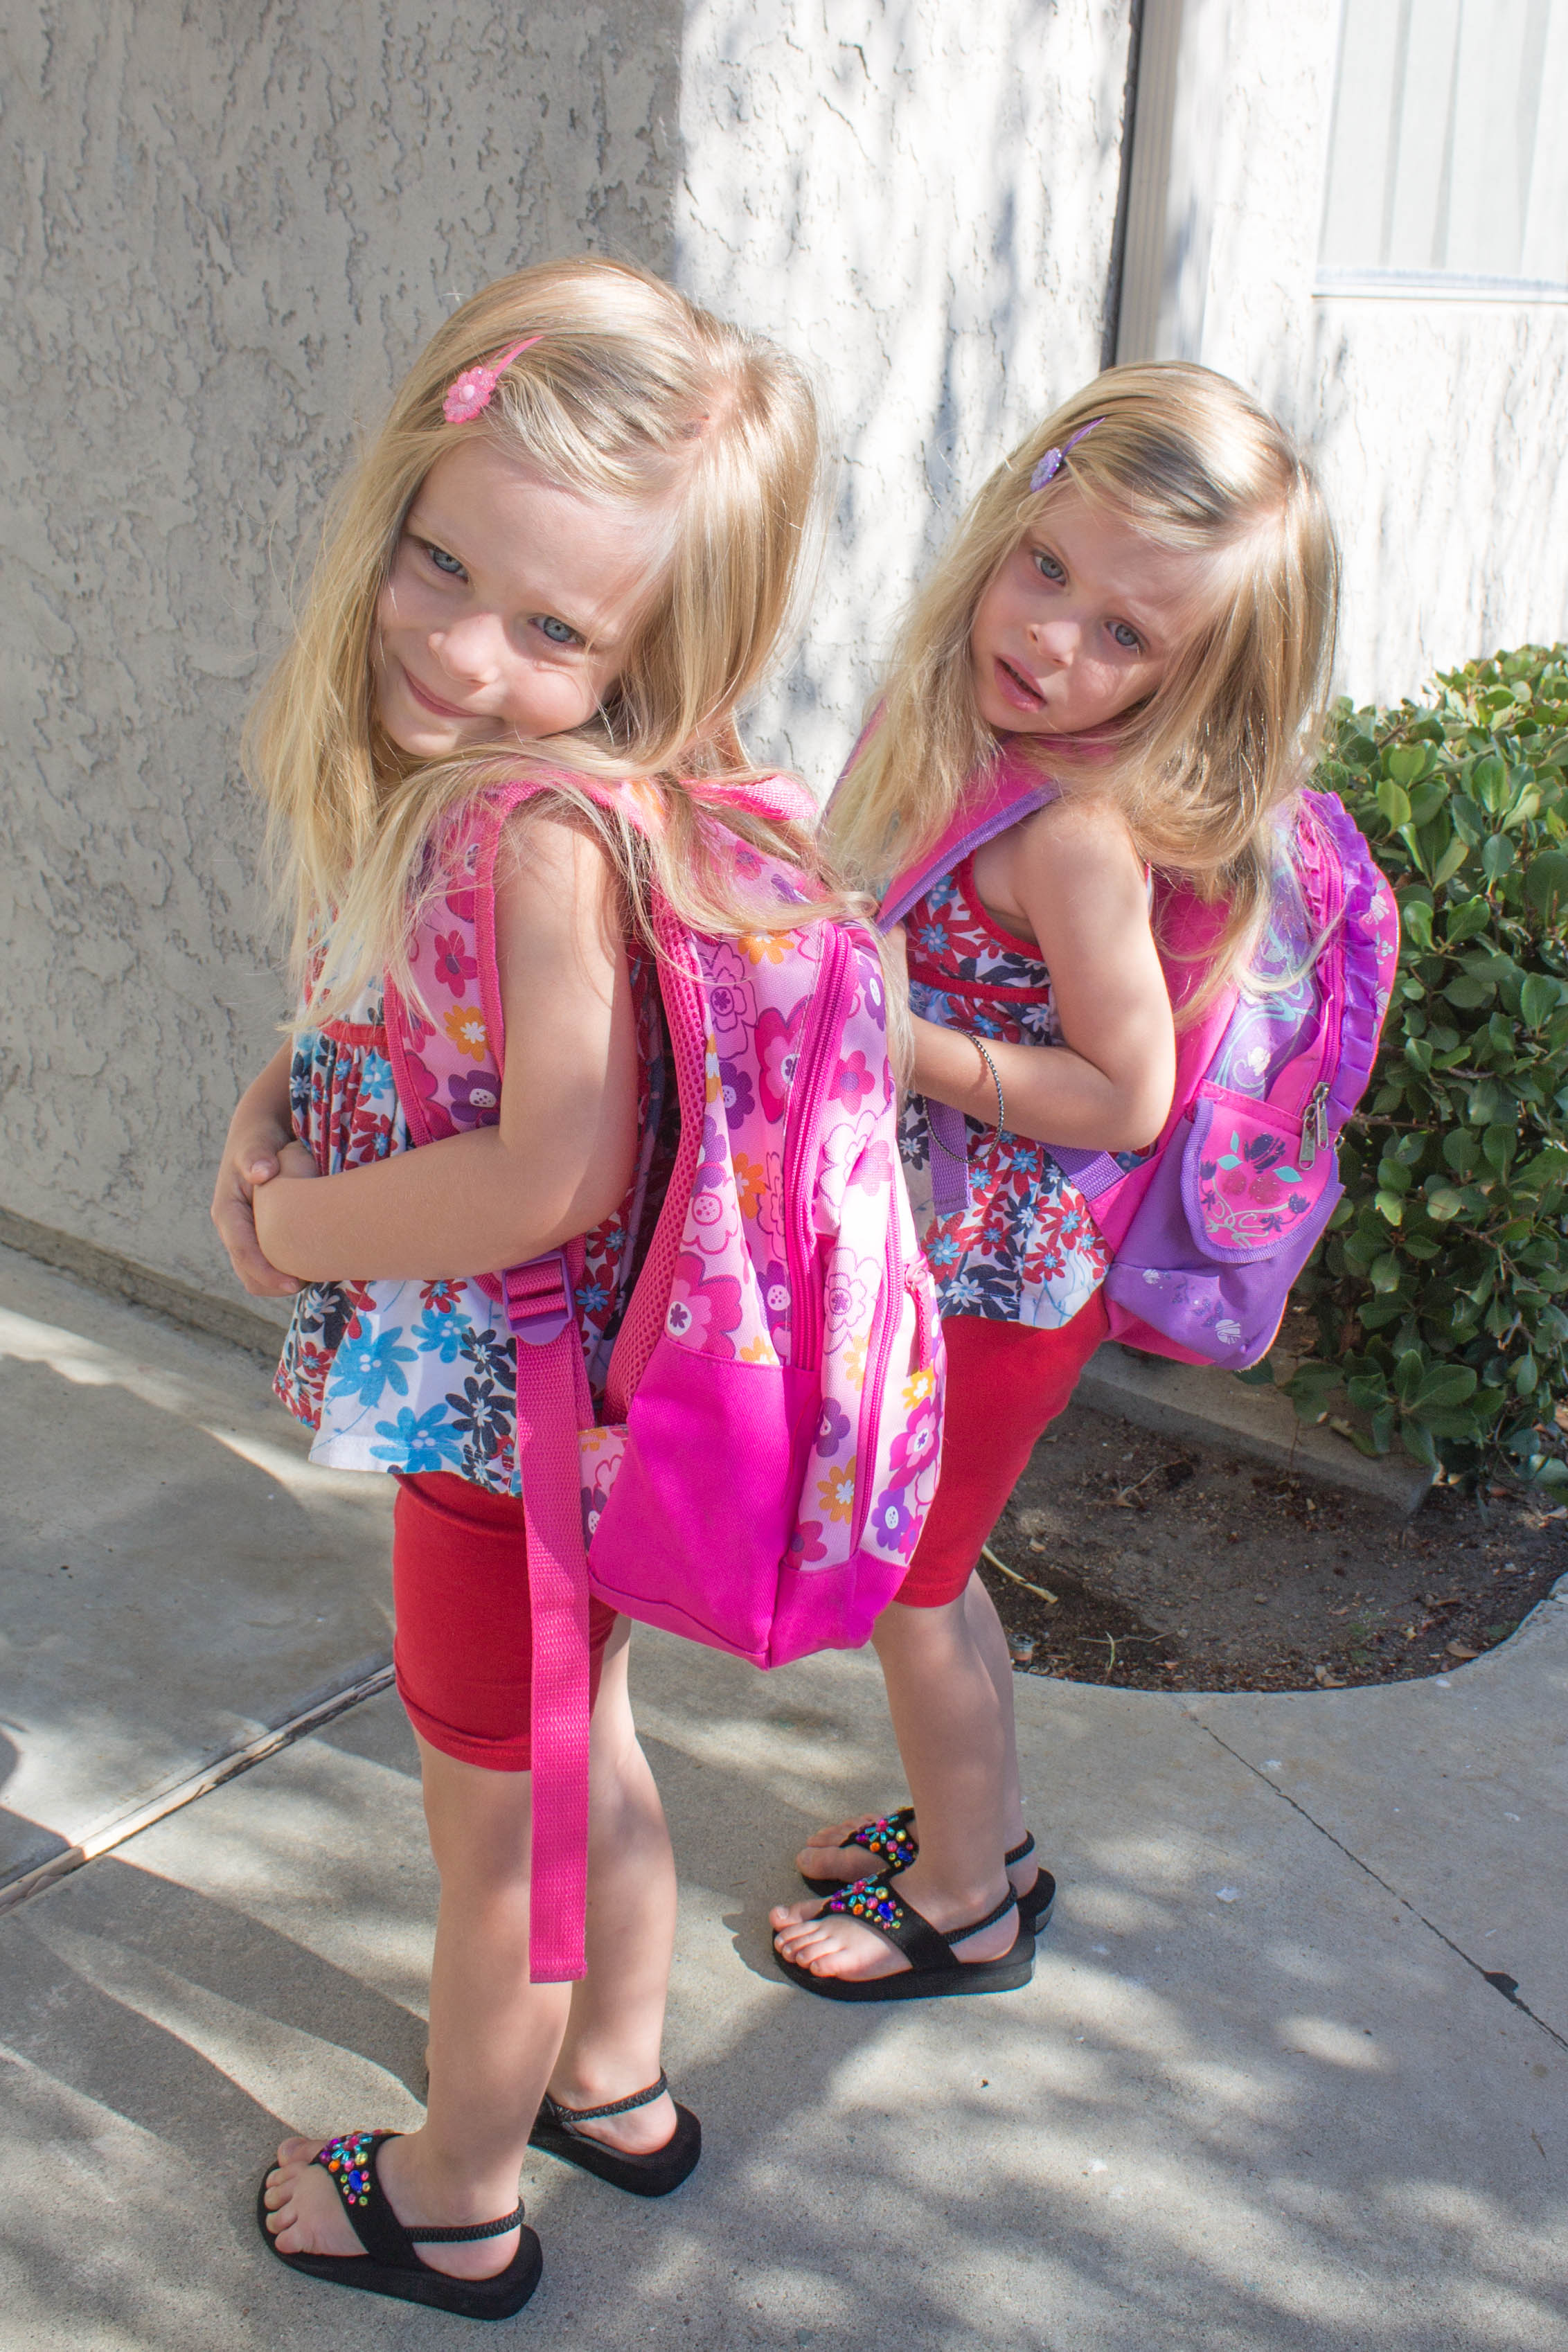 The twins still have 2 years until they start kindergarten. They wish they could go back to school with us though!